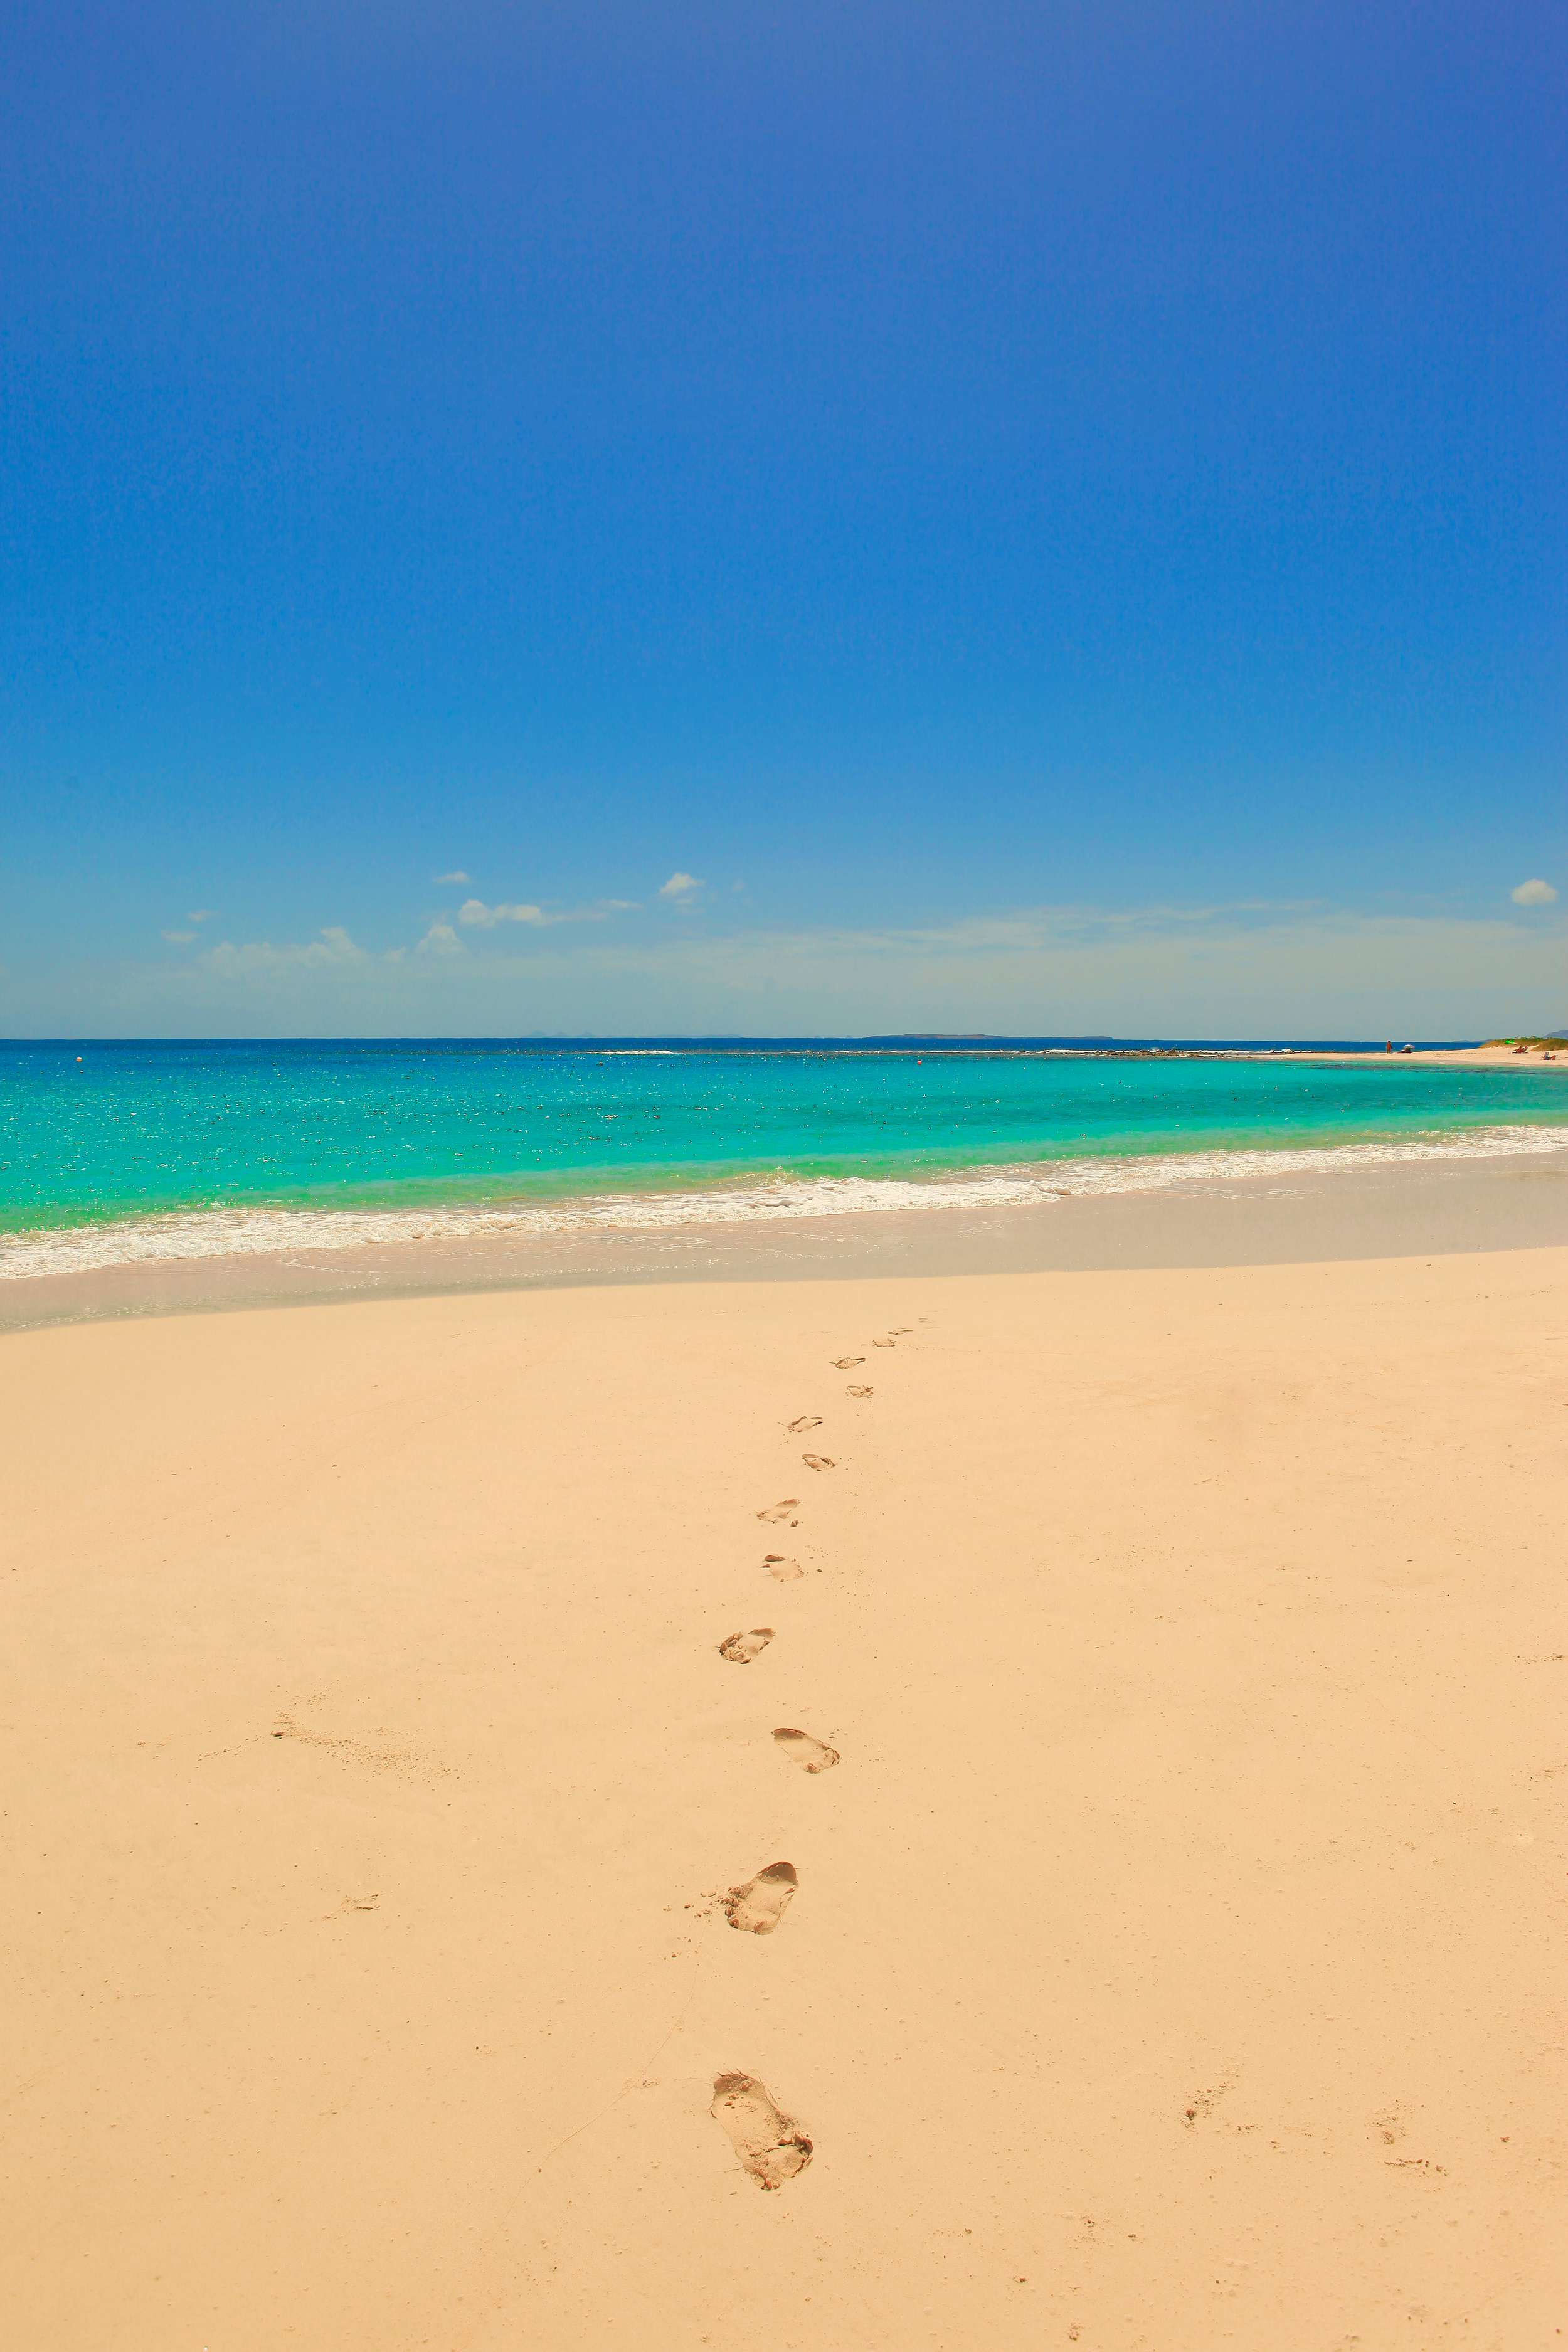 Sandy Hill Bay beach is excellent for swimming, snorkeling, walking, or just private relaxation.